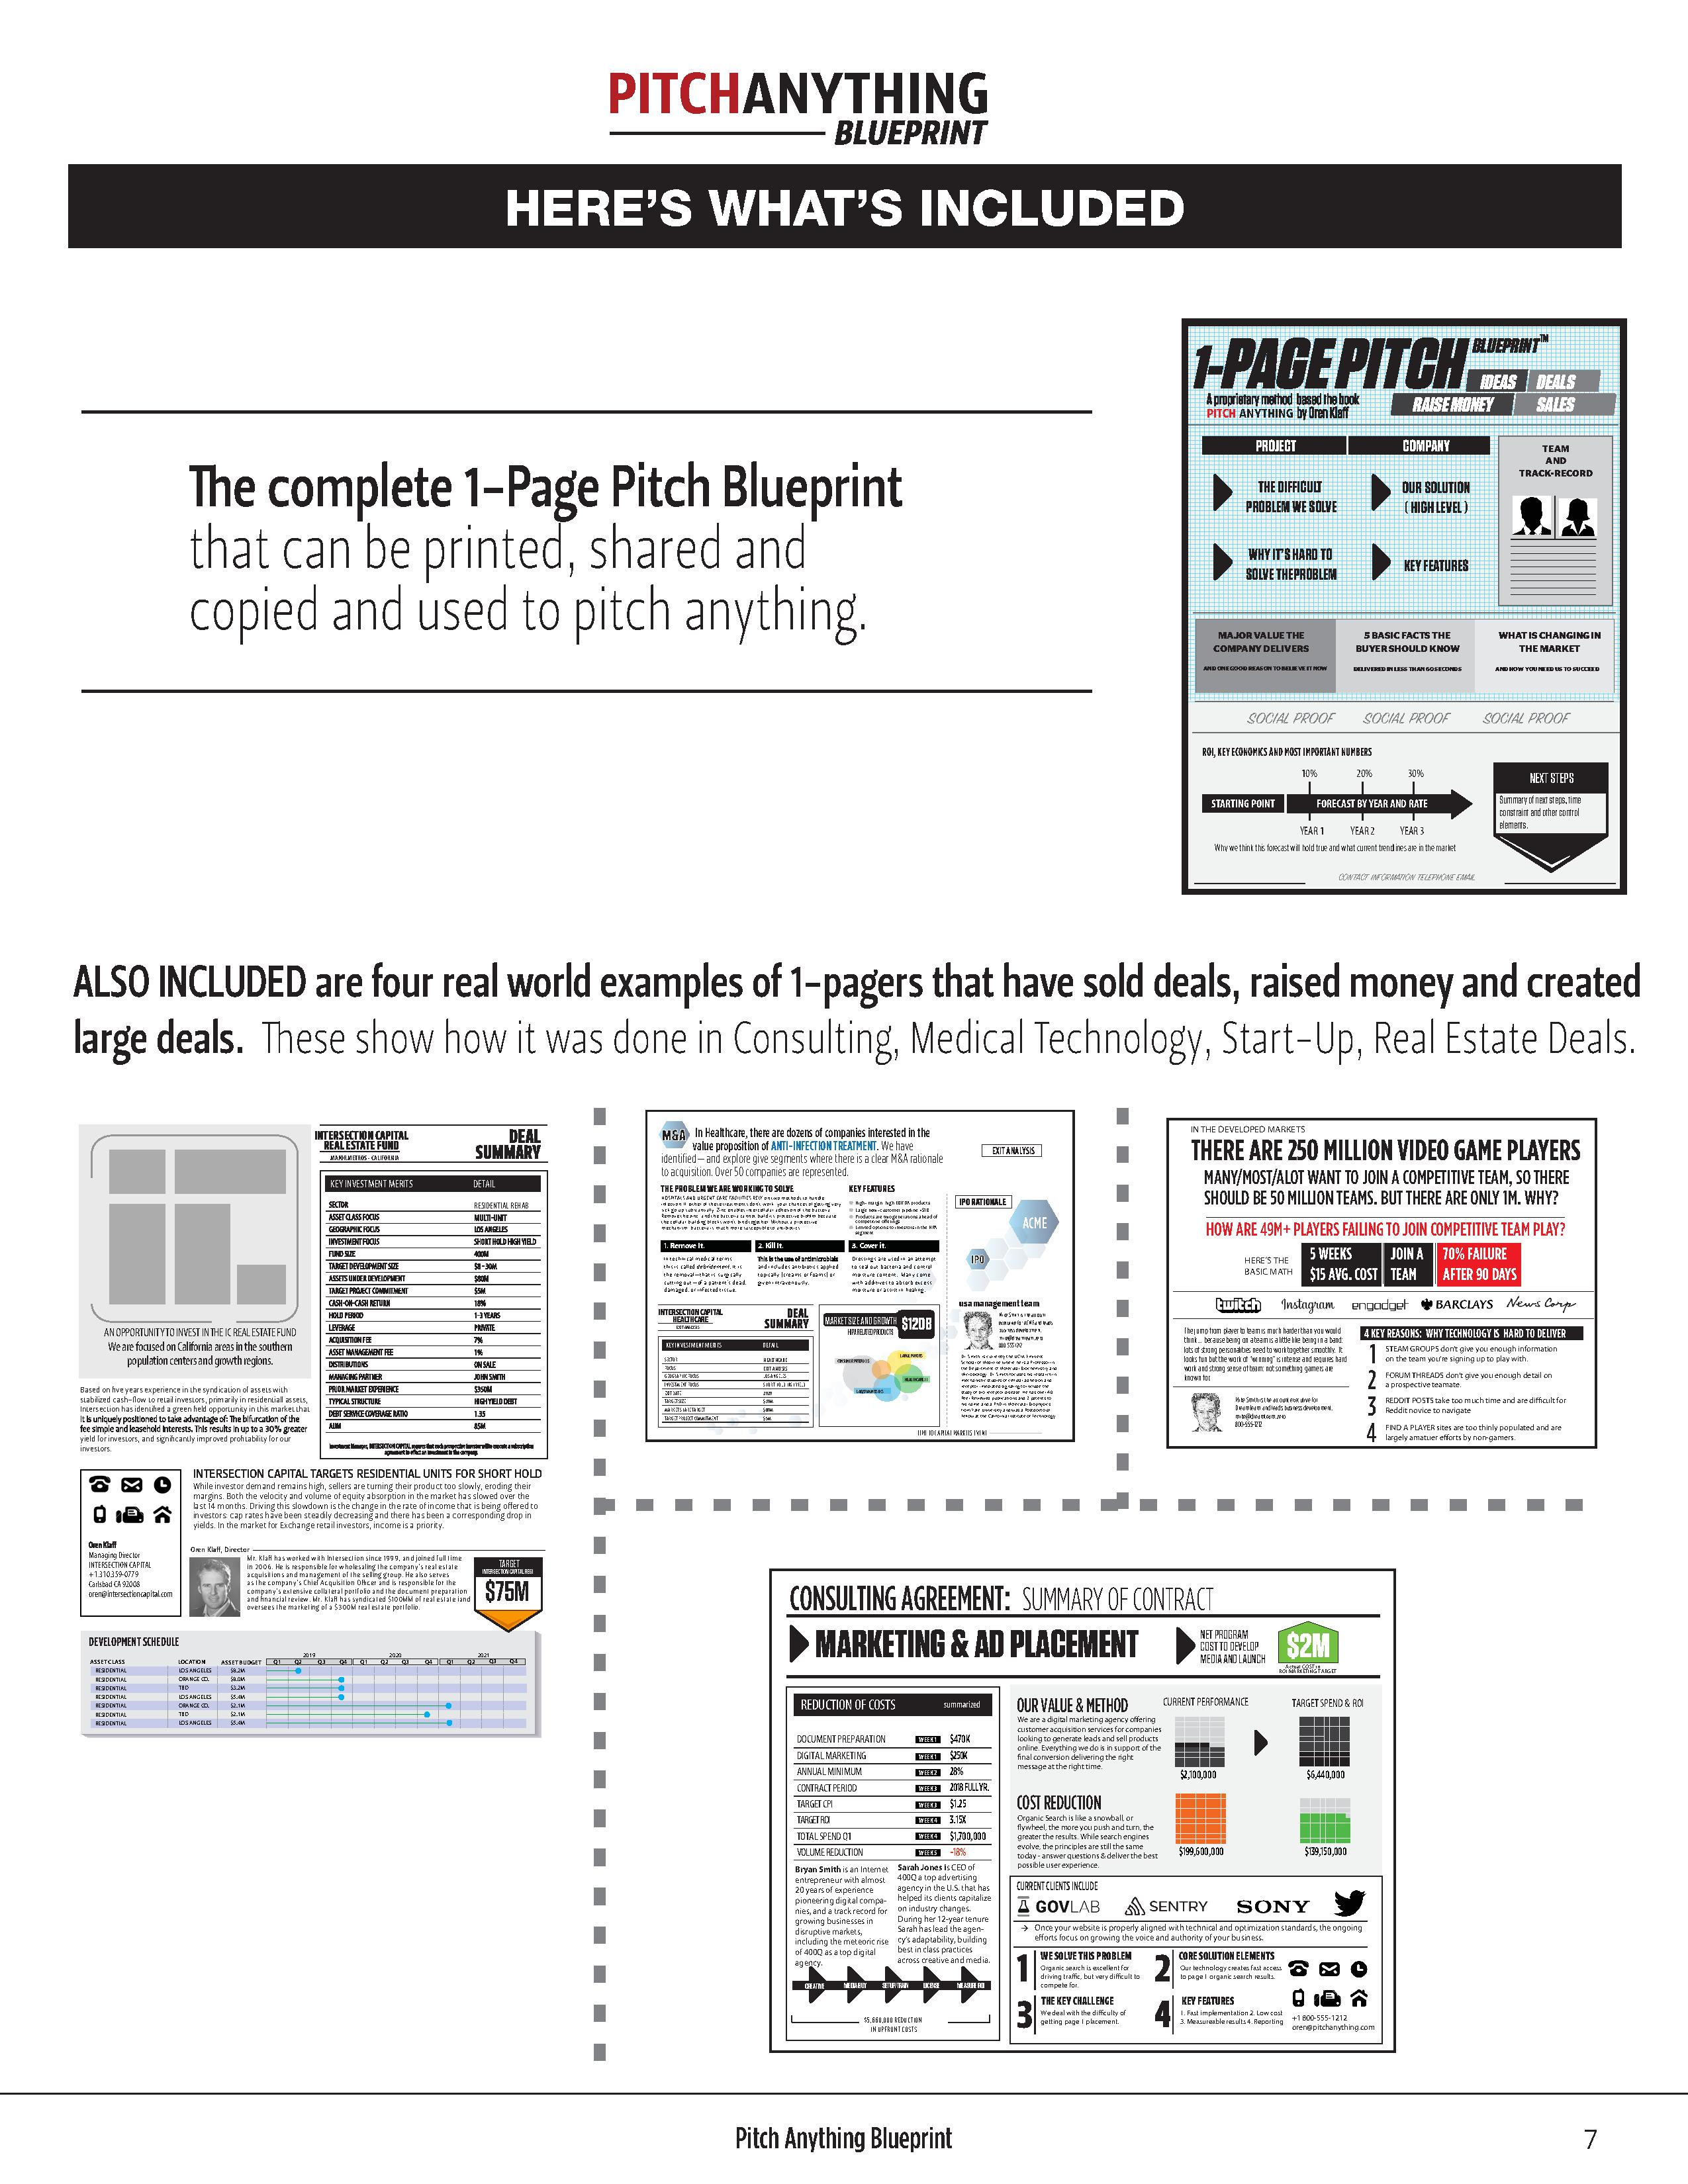 Pitch anything blueprint ideas deals pitch anything raise money sales project company team and track record he complete 1 page pitch blueprint the difficult our solution malvernweather Images